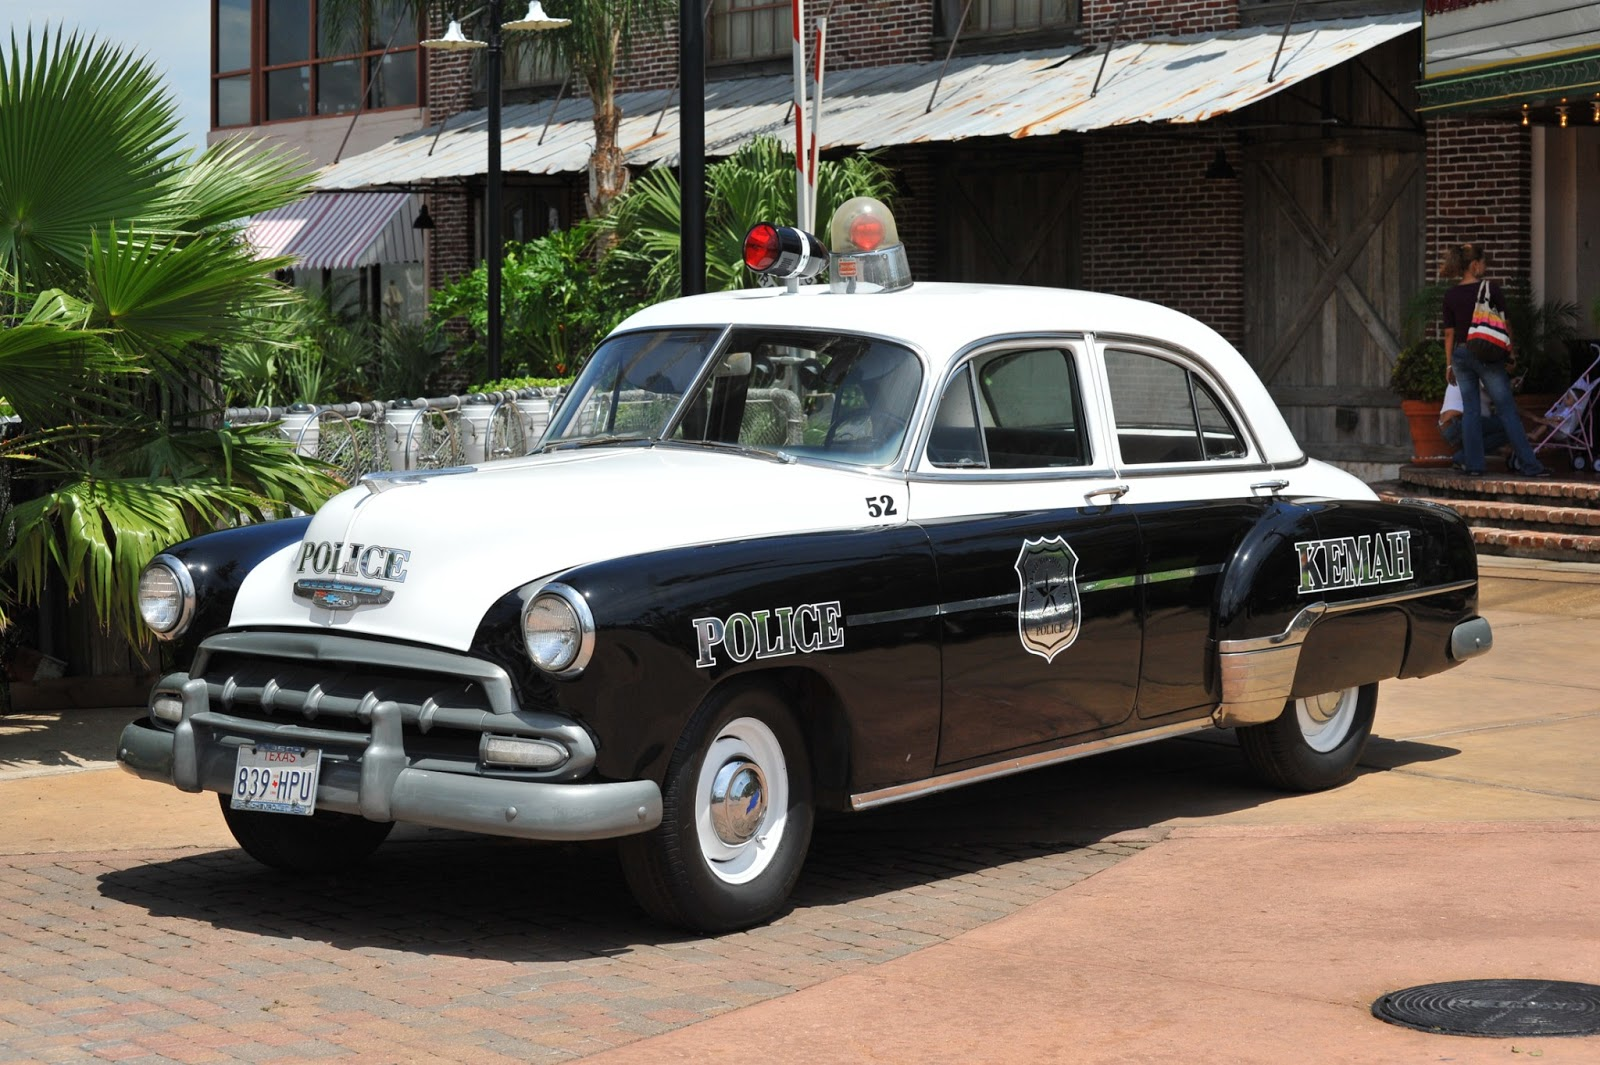 cause cops care old police car in kemah texas. Black Bedroom Furniture Sets. Home Design Ideas